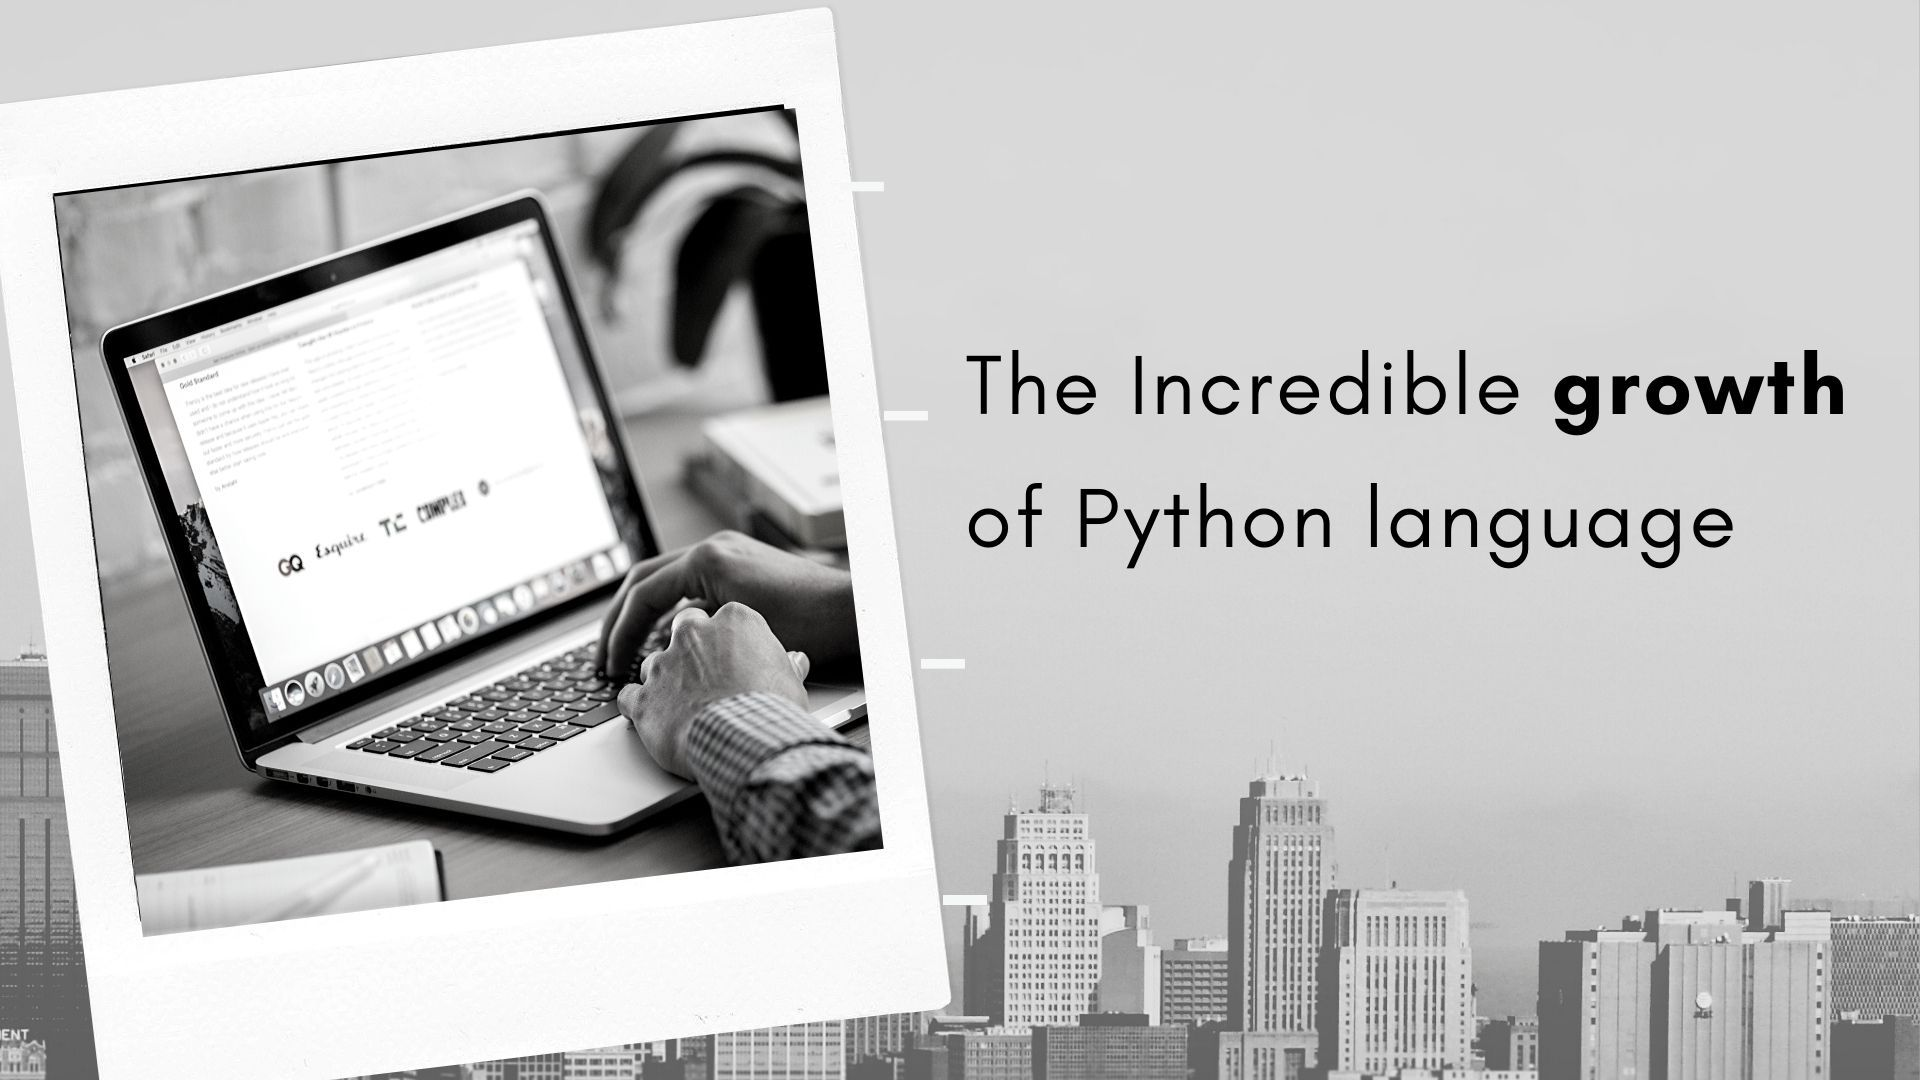 The incredible growth of Python language